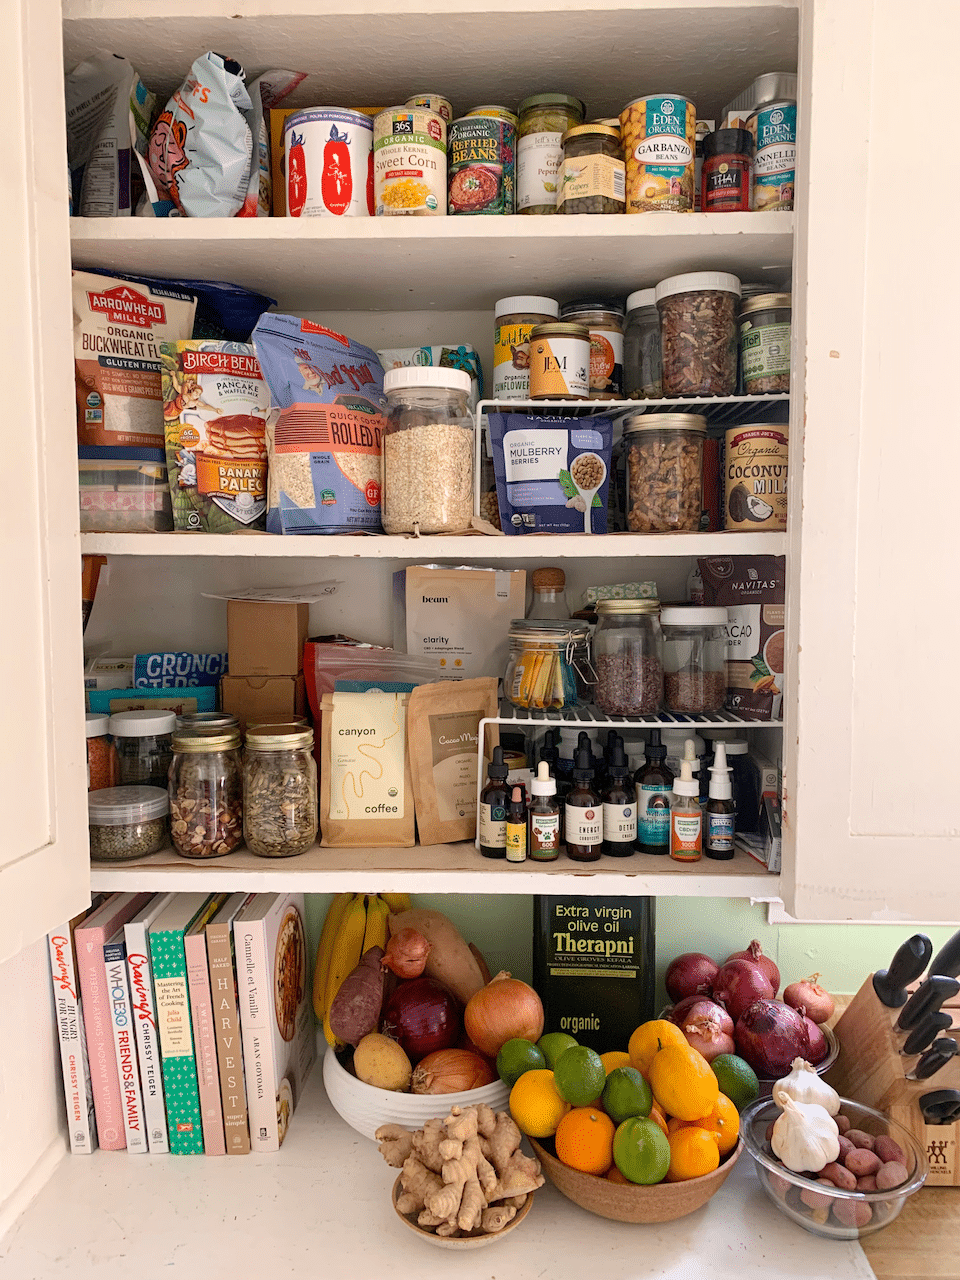 stocked pantry full of healthy food from the grocery store